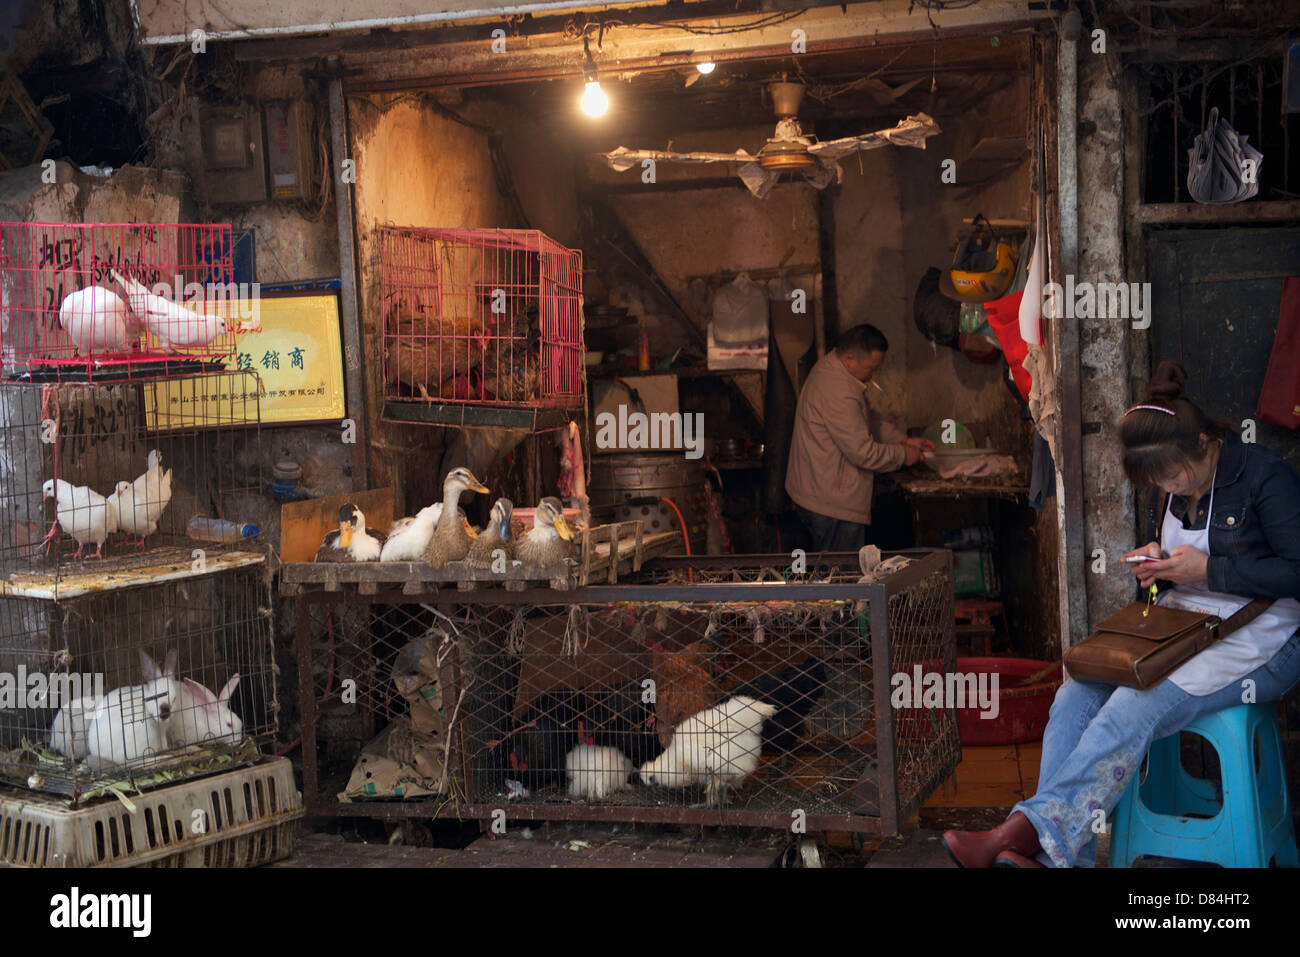 Live poultry are on sale in Chongqing, China. 09-May-2013 Stock Photo